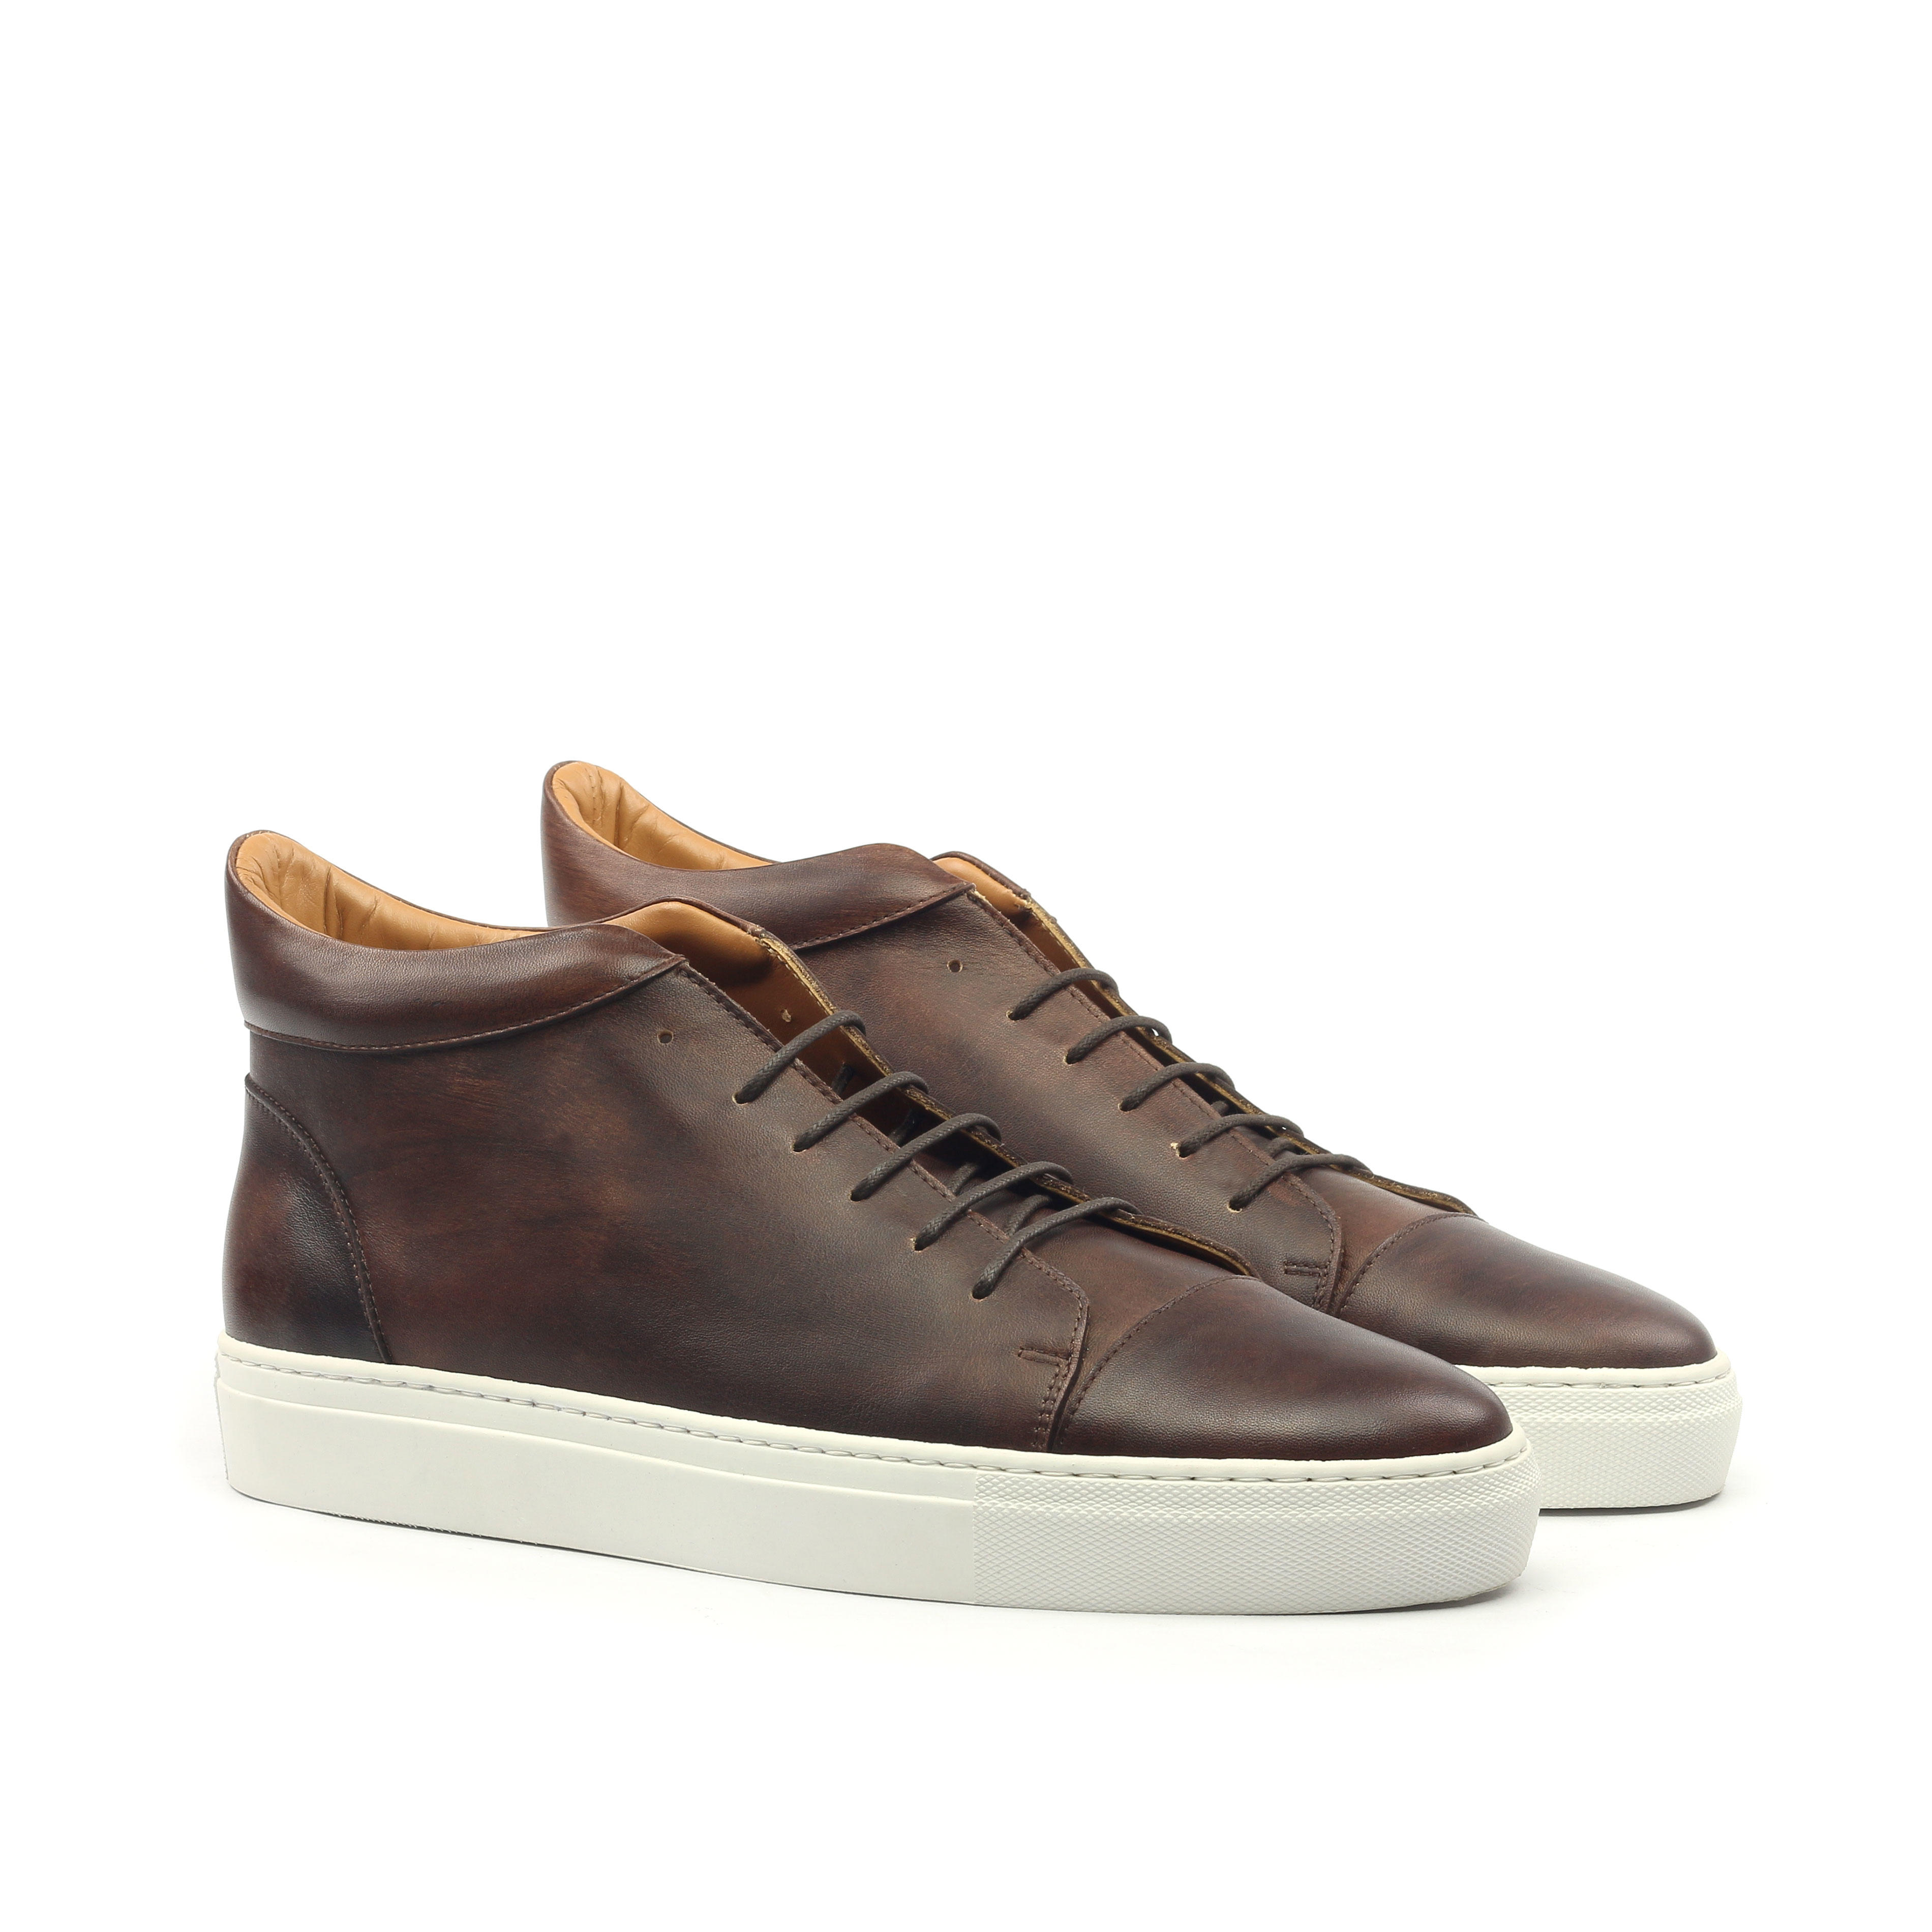 Manor of London 'The Joshua' Brown Calfskin High-Top Trainer Luxury Custom Initials Monogrammed Front Side View